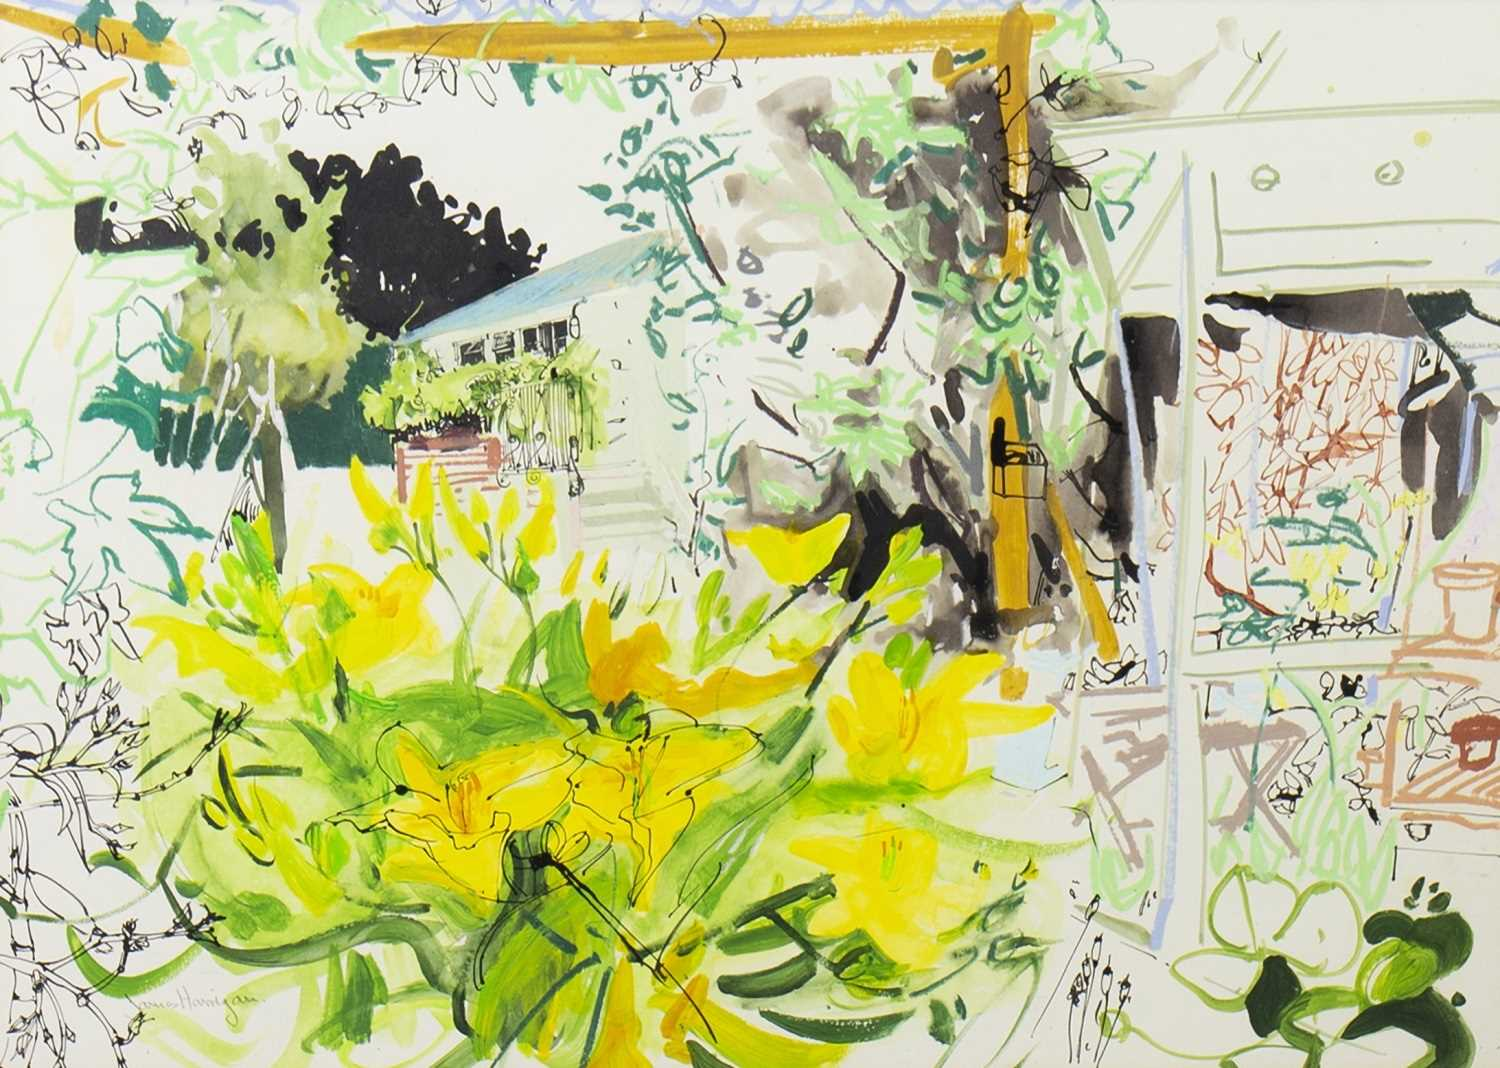 Lot 542-THE POTTING SHED, A MIXED MEDIA BY JAMES HARRIGAN